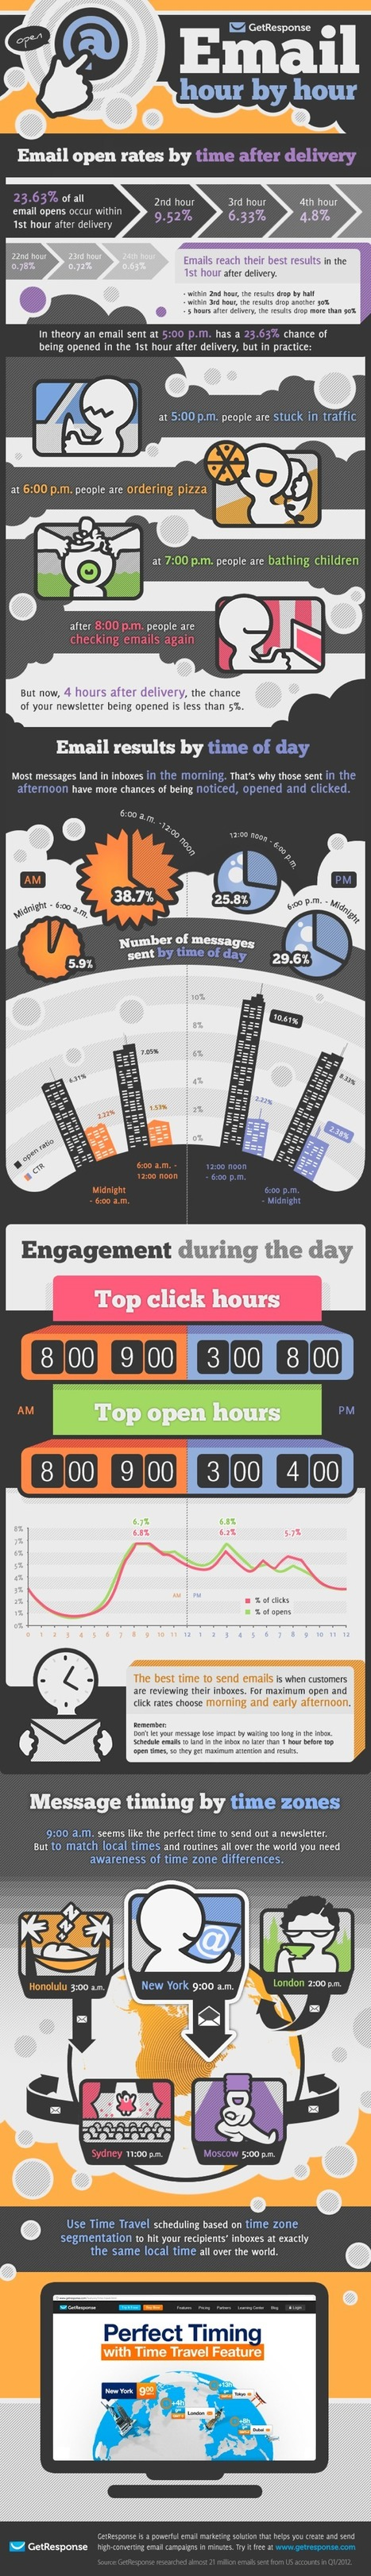 Emails Reach Their Best Results In the 1st Hour #Infographic | MarketingHits | Scoop.it